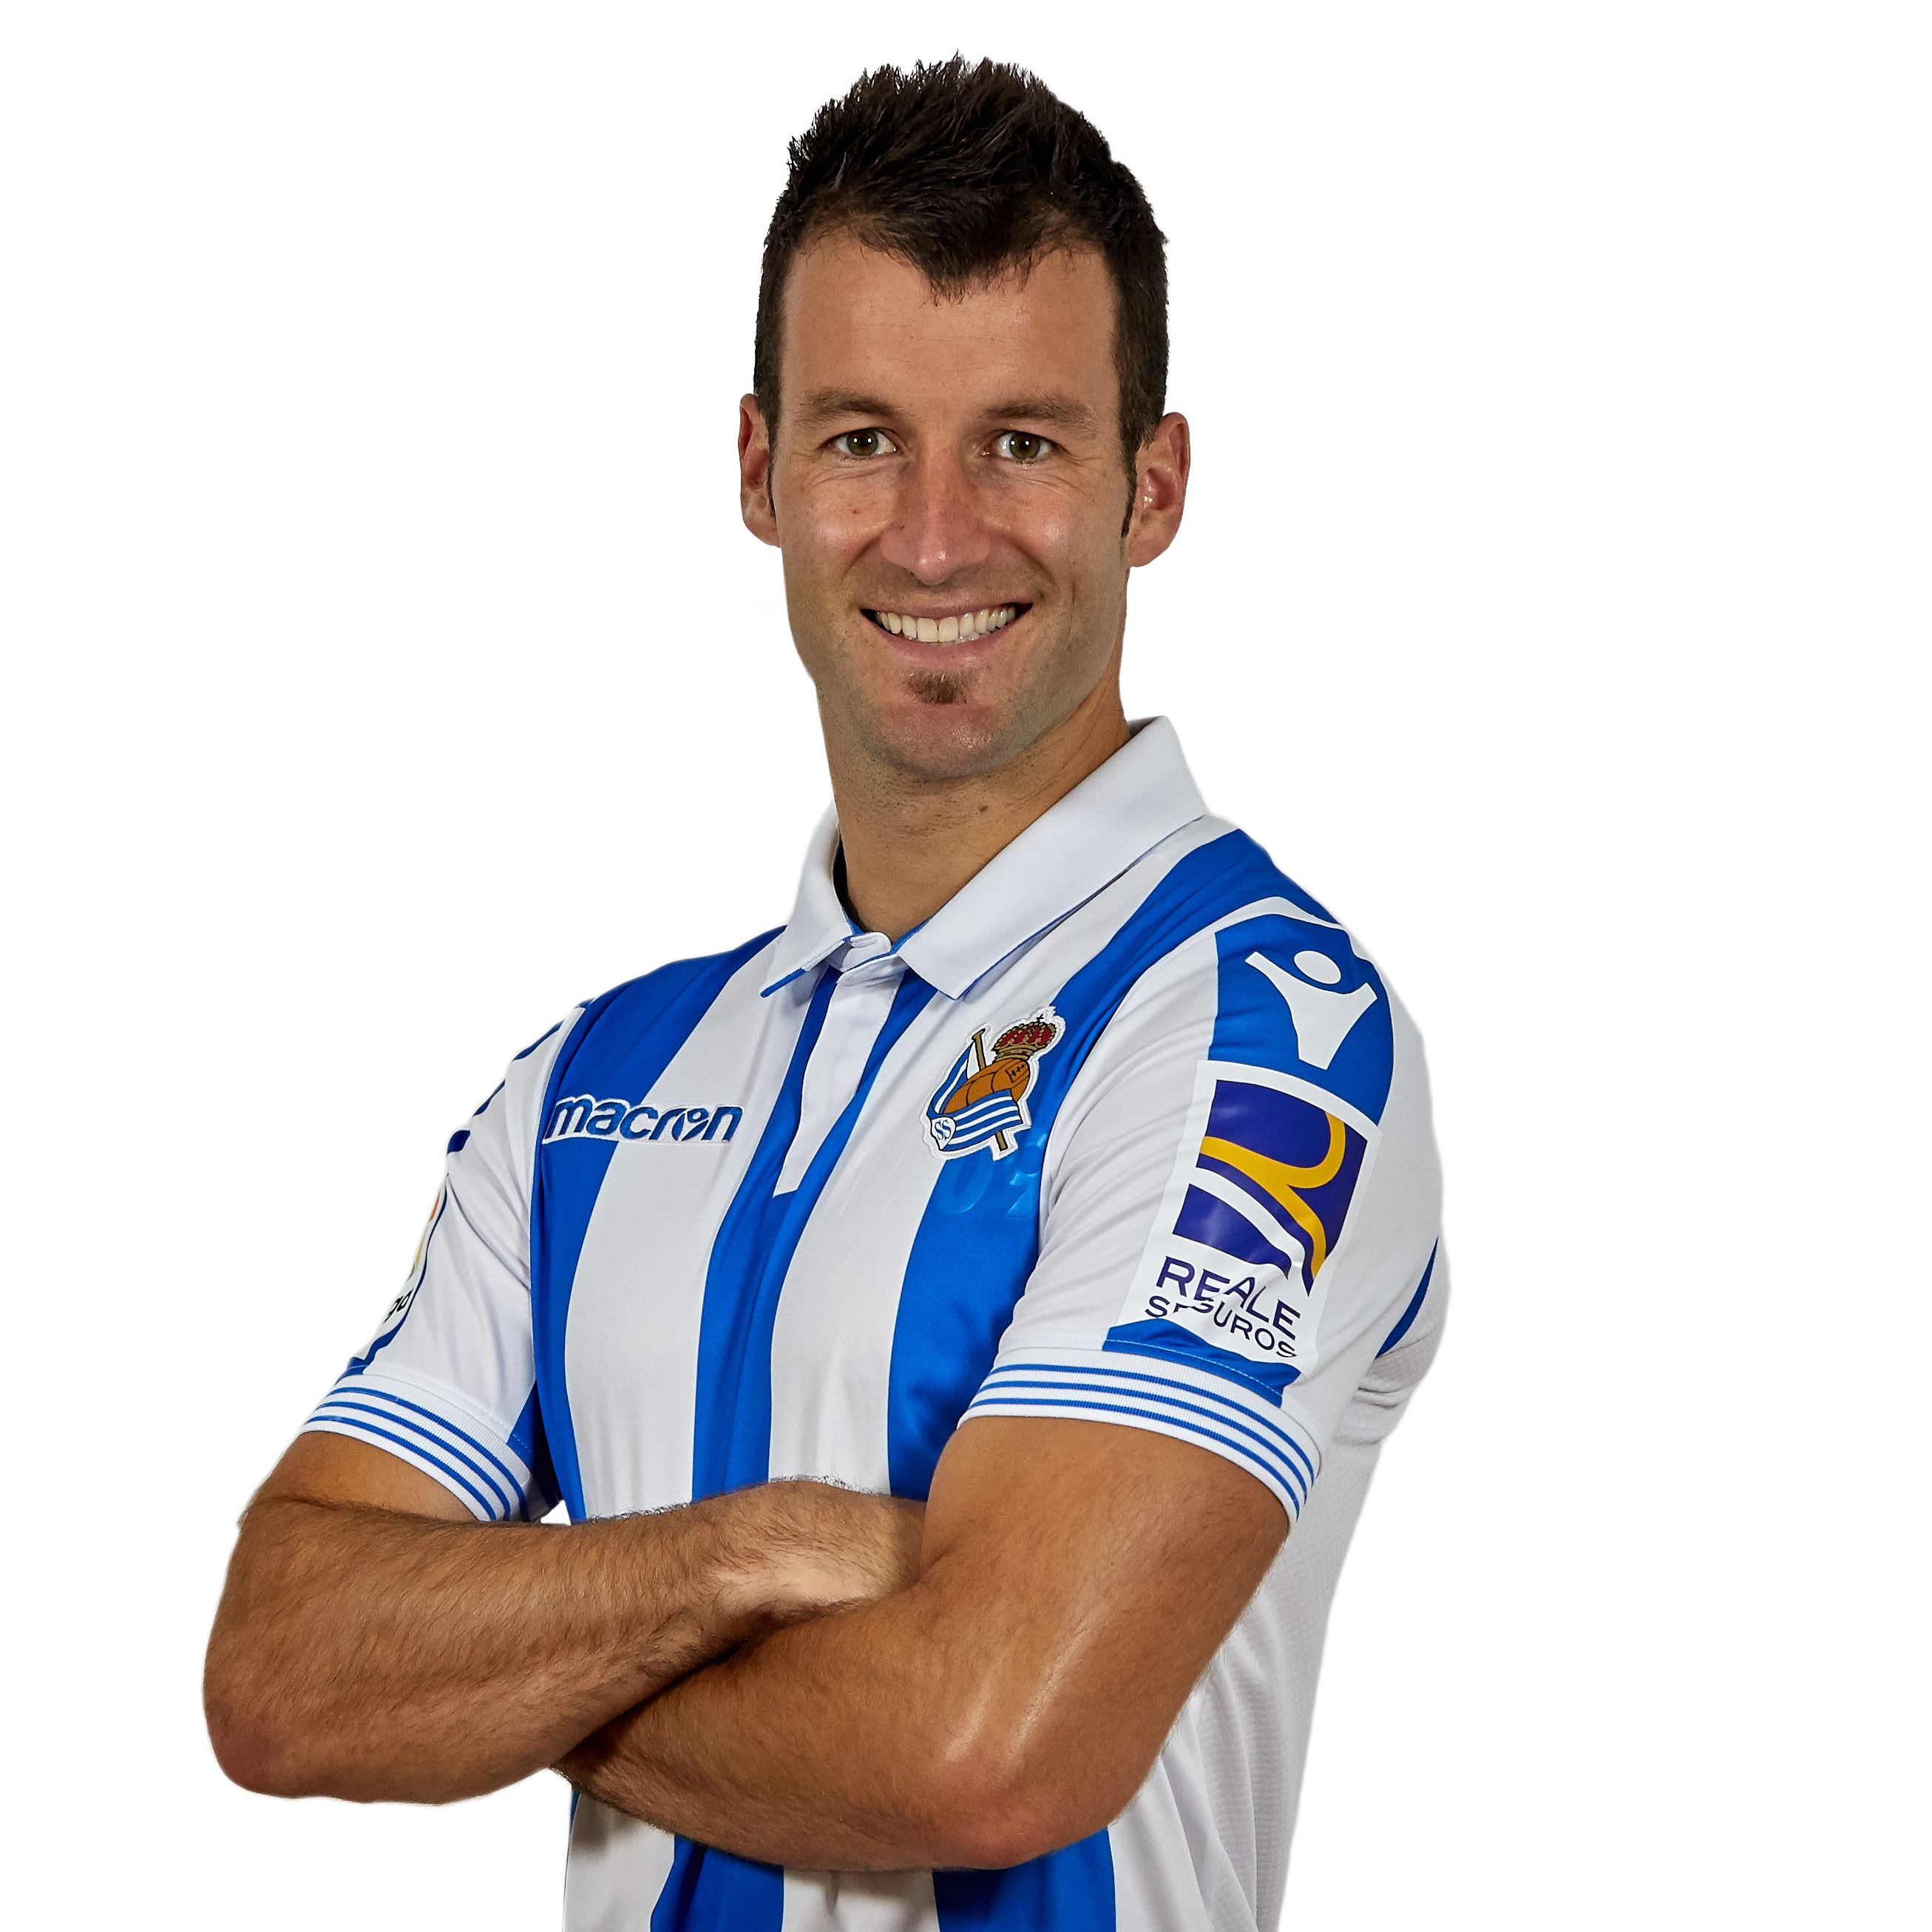 Maillot Extérieur Real Sociedad Theo